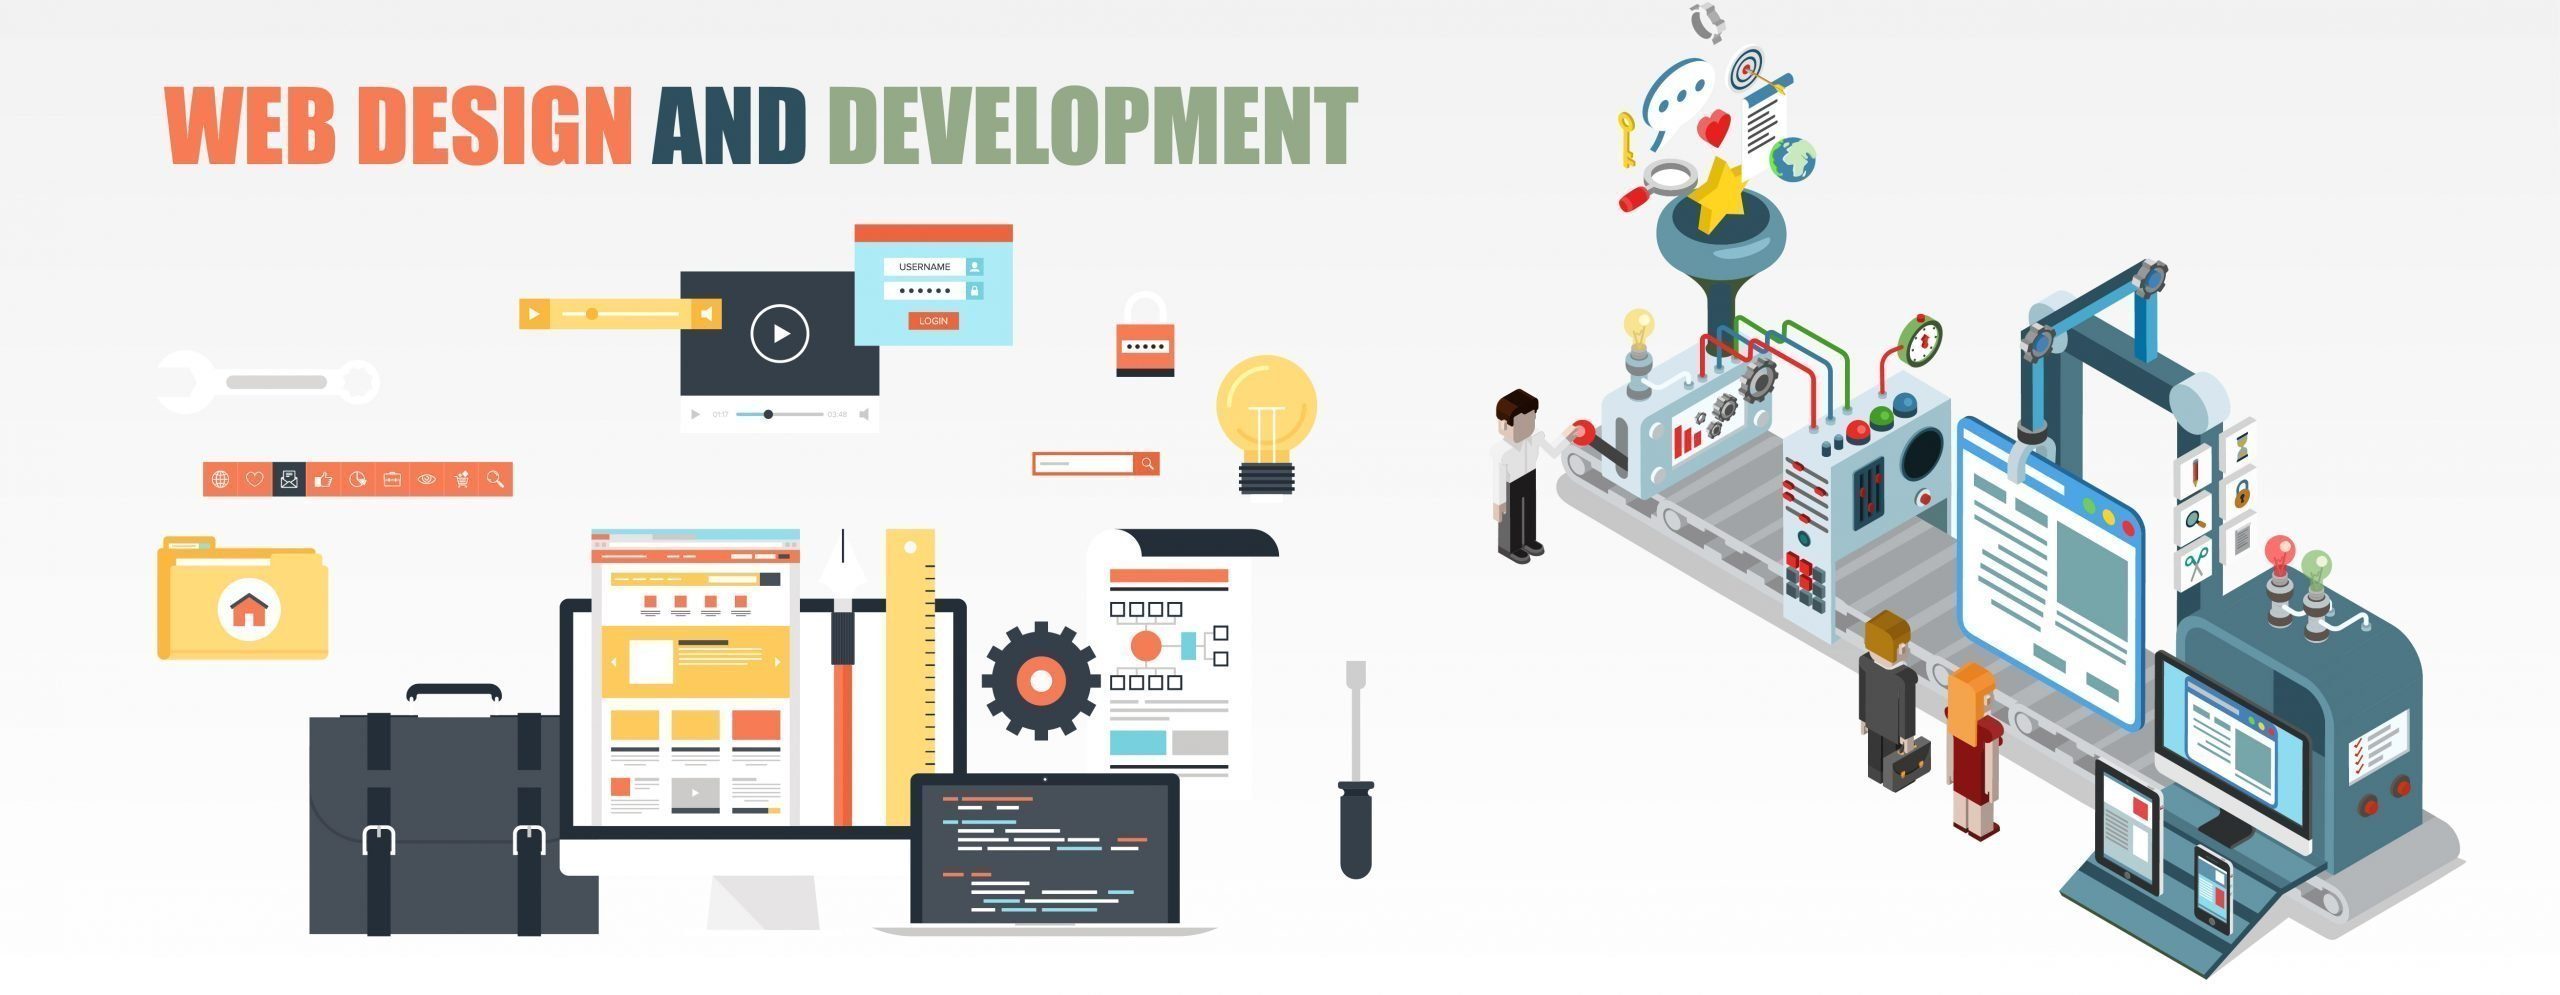 Top Governmental Websites Development in Saudi Arabia 2 CodeShip